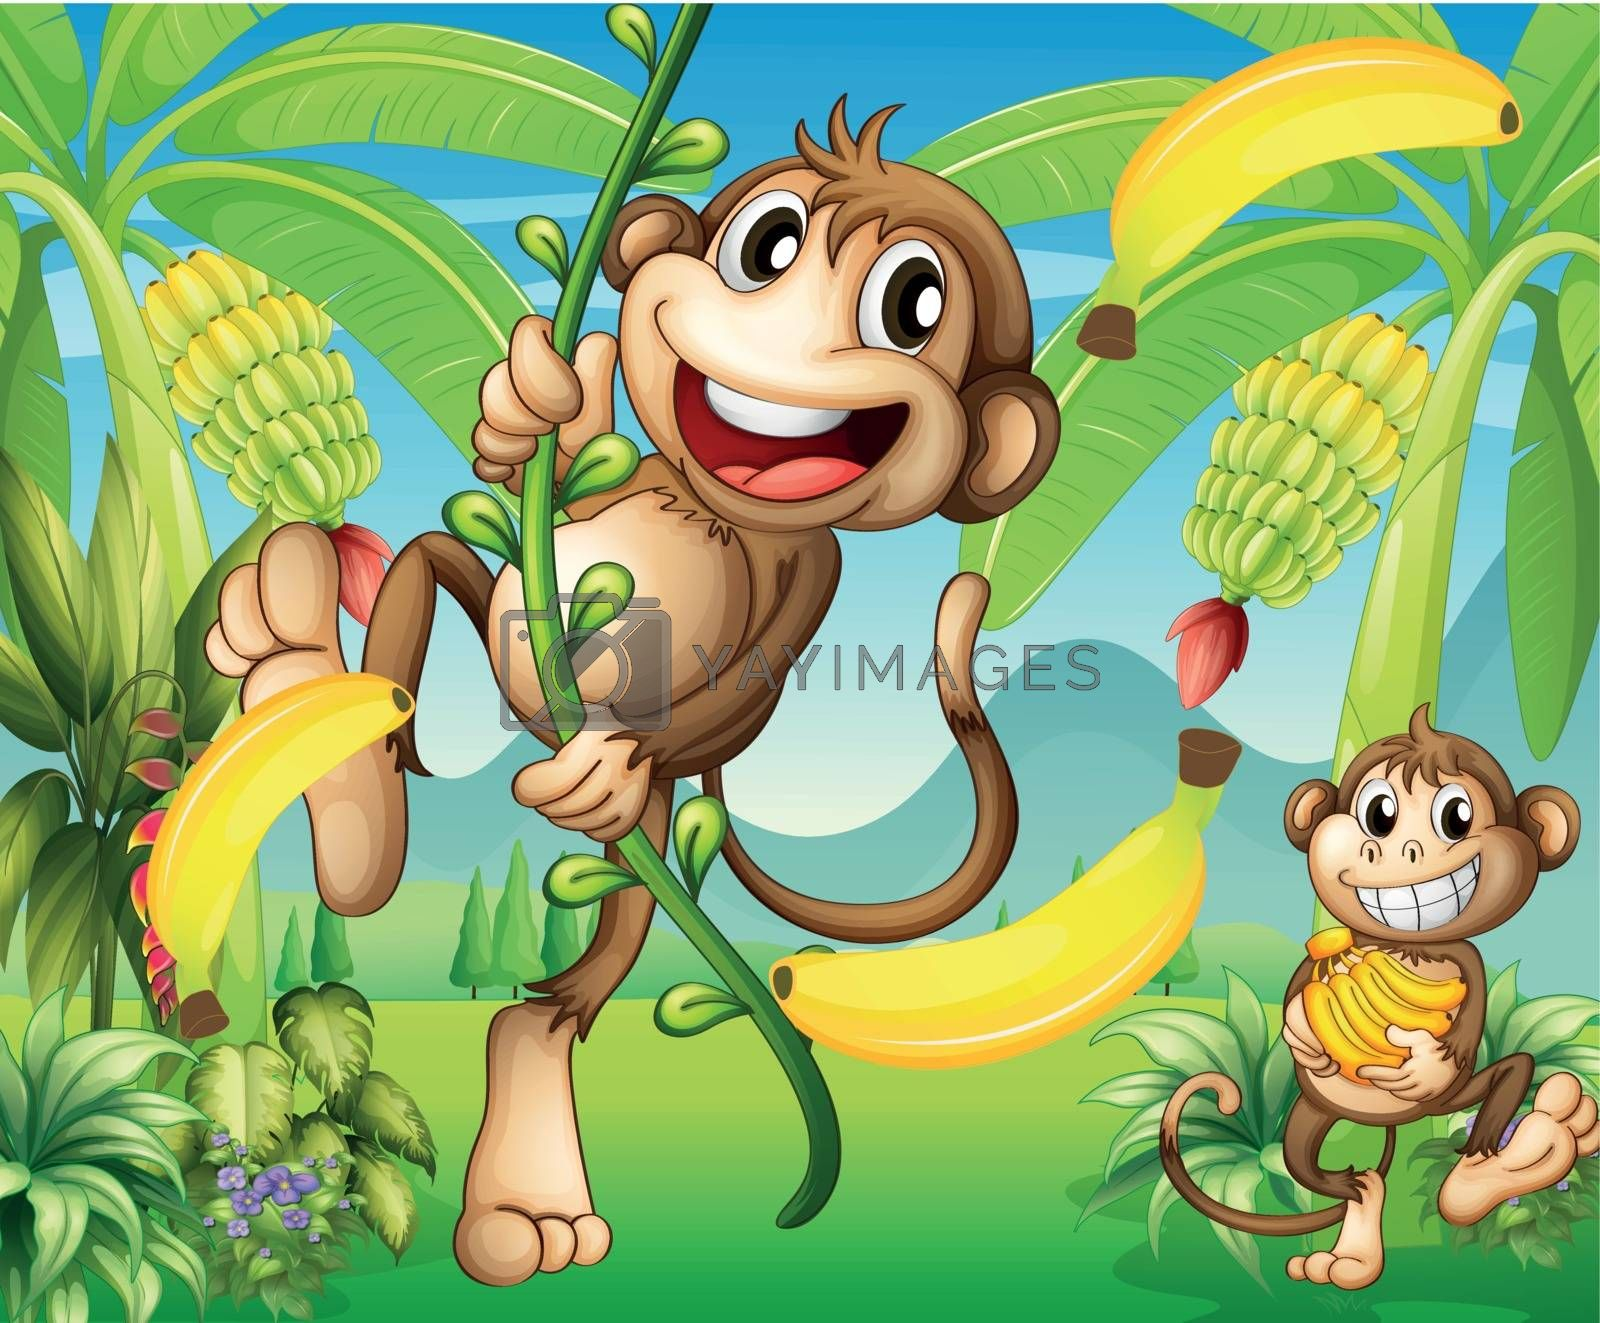 Royalty free image of Two monkeys near the banana plant by iimages